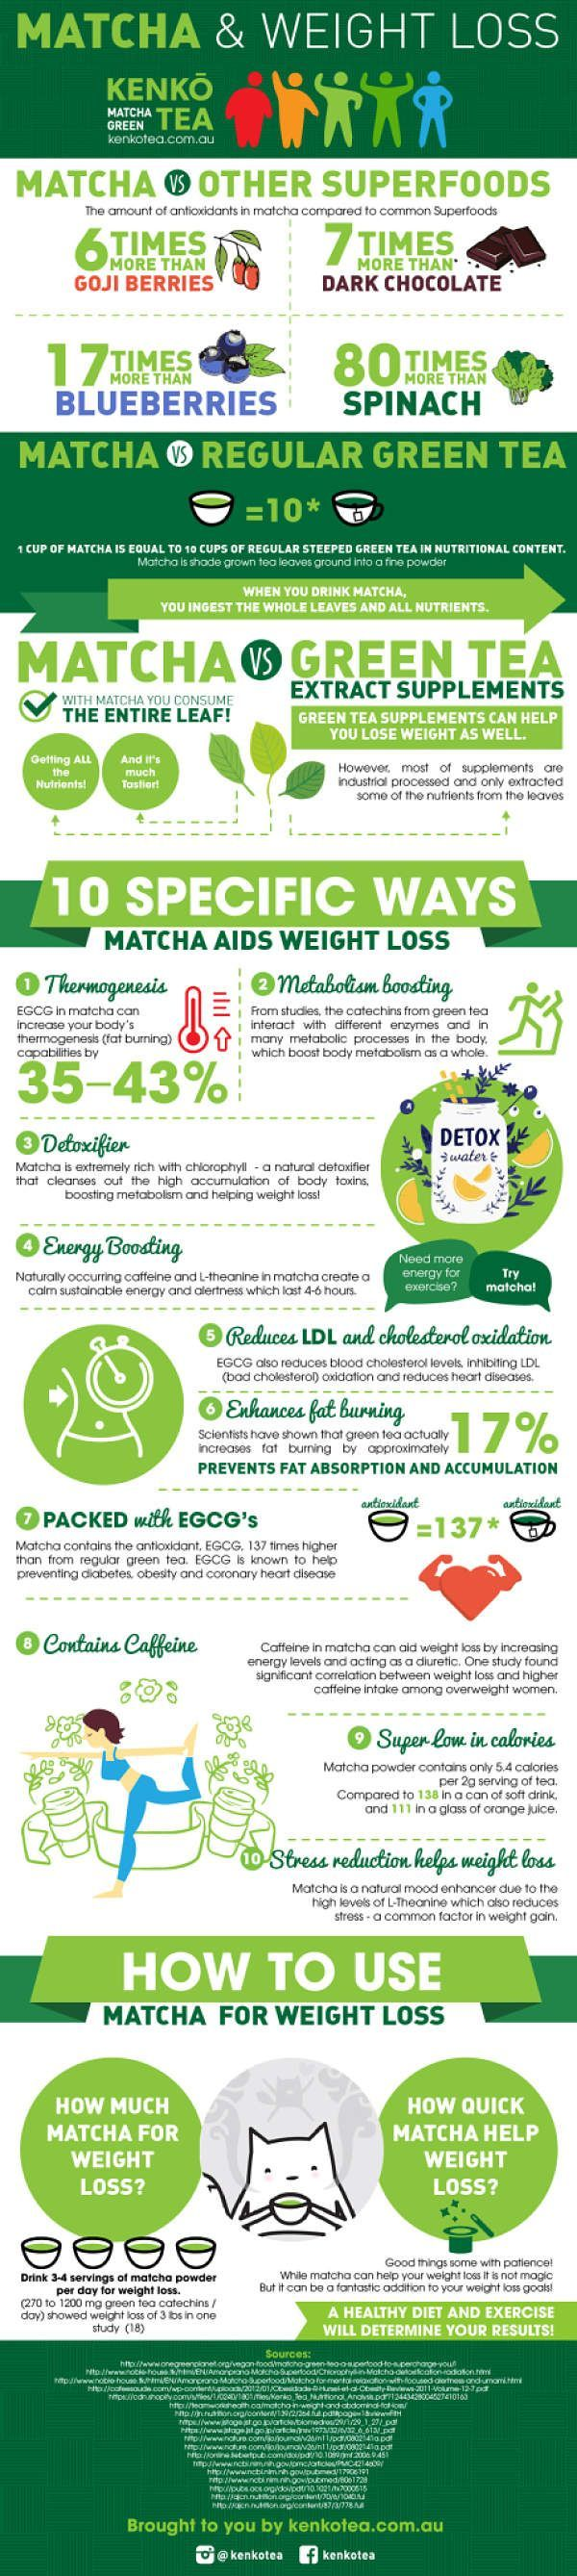 Matcha Green Tea health Benefits Infographic. Try Mango Lime Matcha Sparkling Tea from Bhakti to get your match a fix | drinkbhakti.com